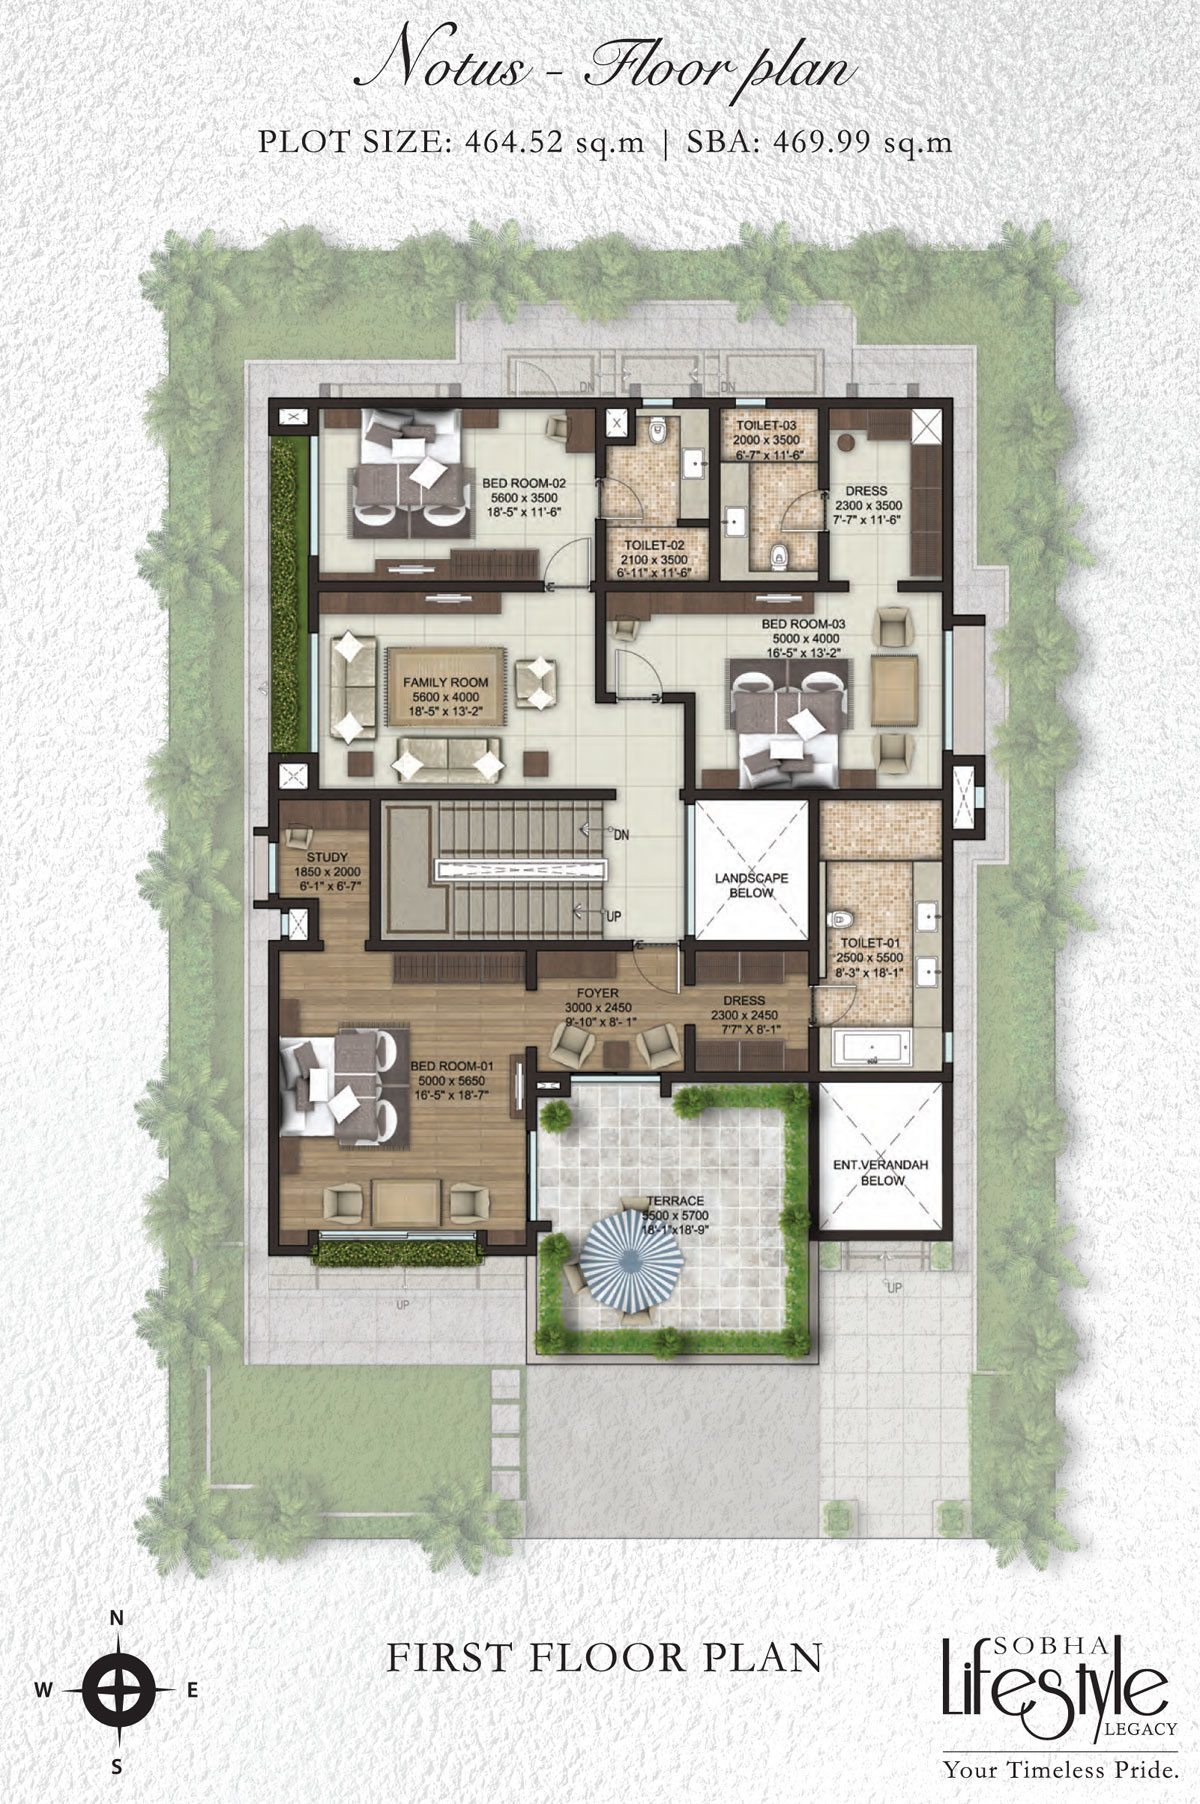 sobha lifestyle first floor plan property first